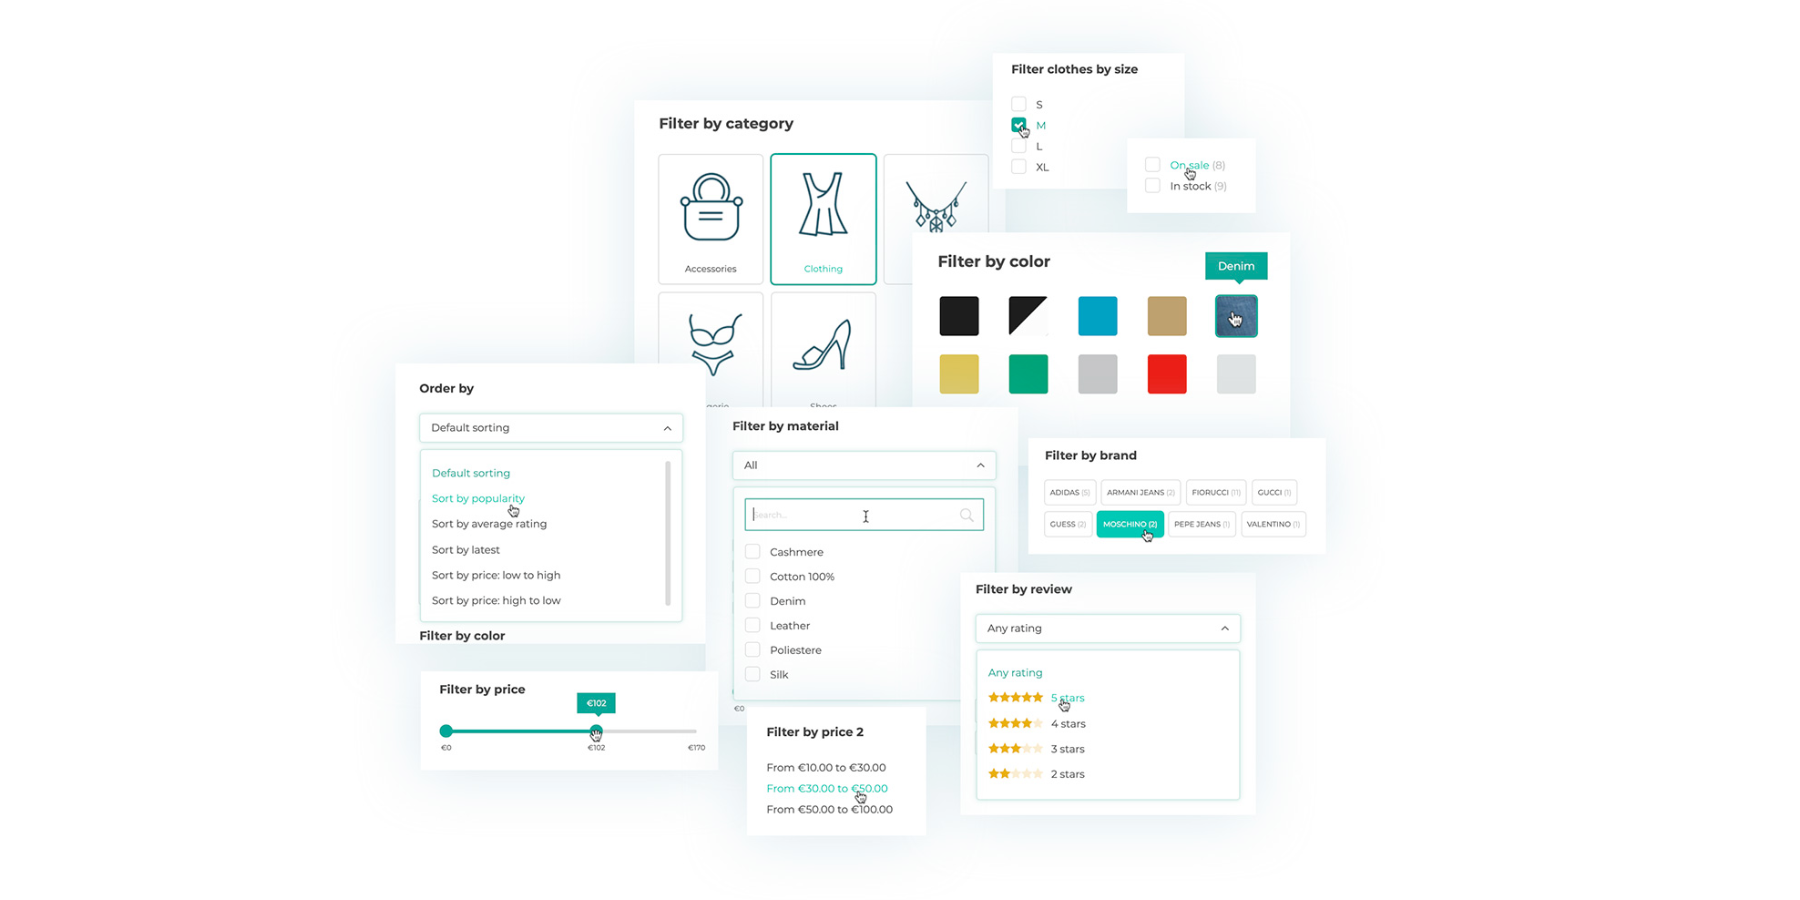 YITH WooCommerce Product Filter 4.0